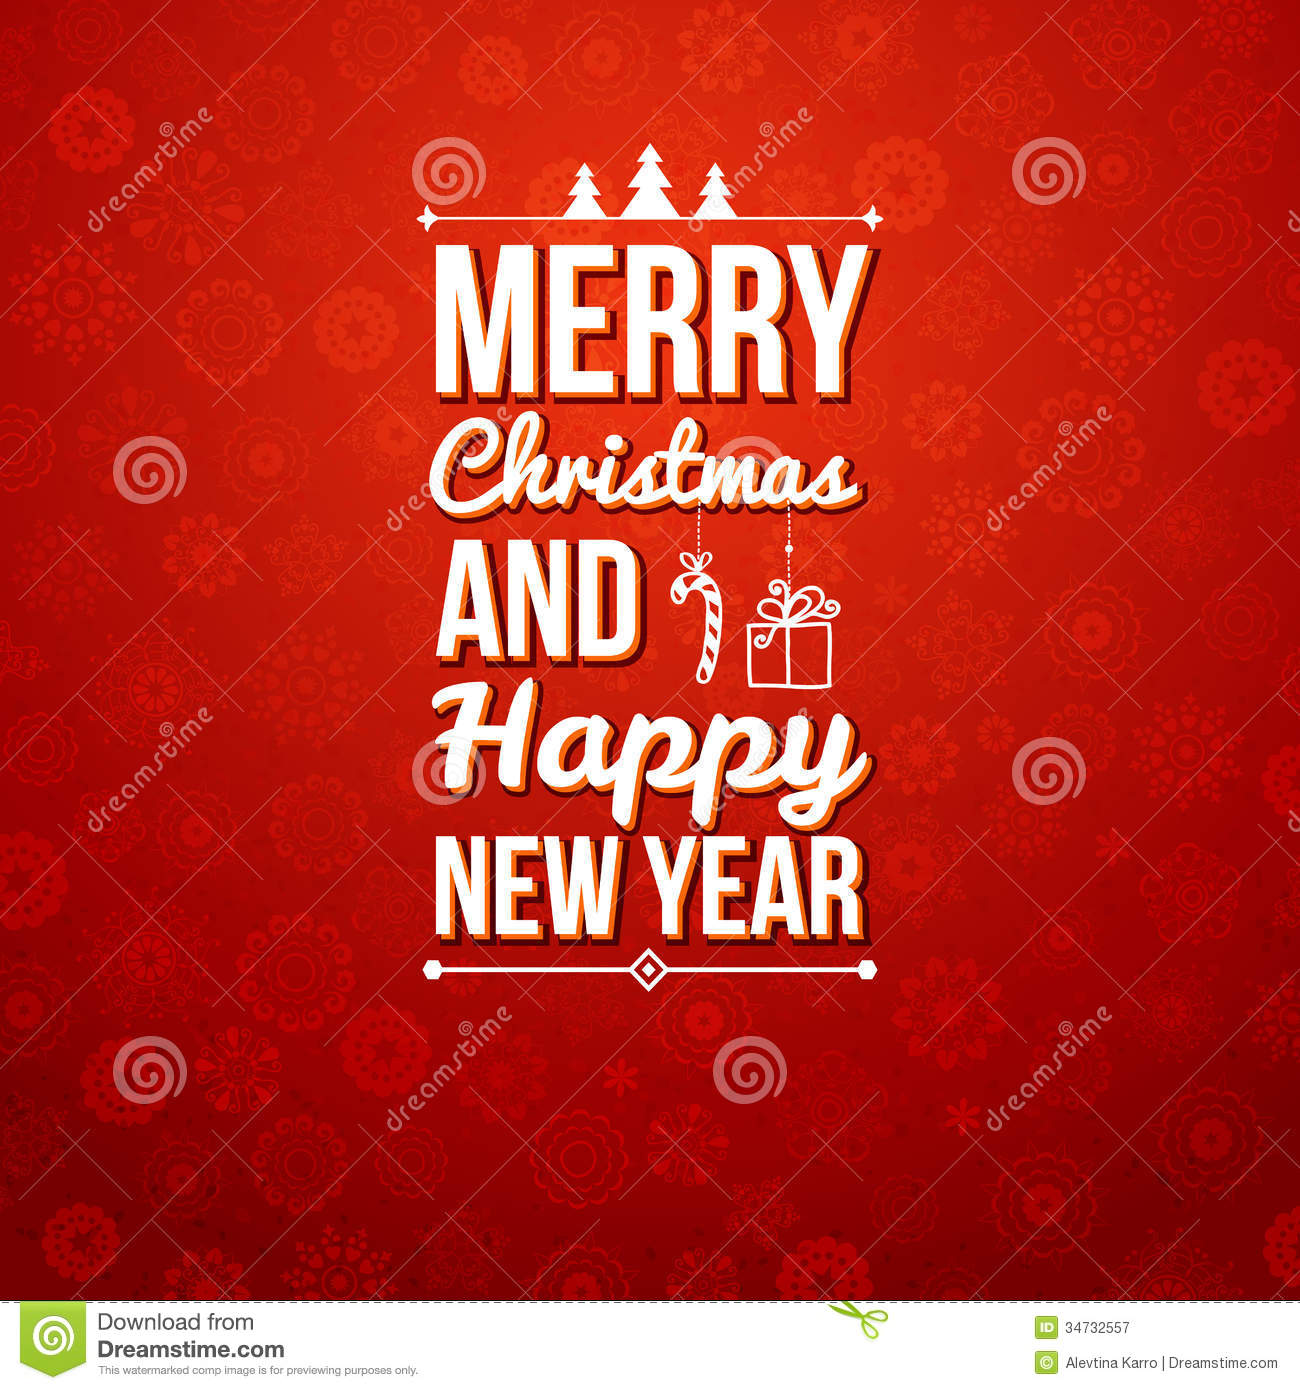 Merry Christmas And Happy New Year Card. Royalty Free Stock ...